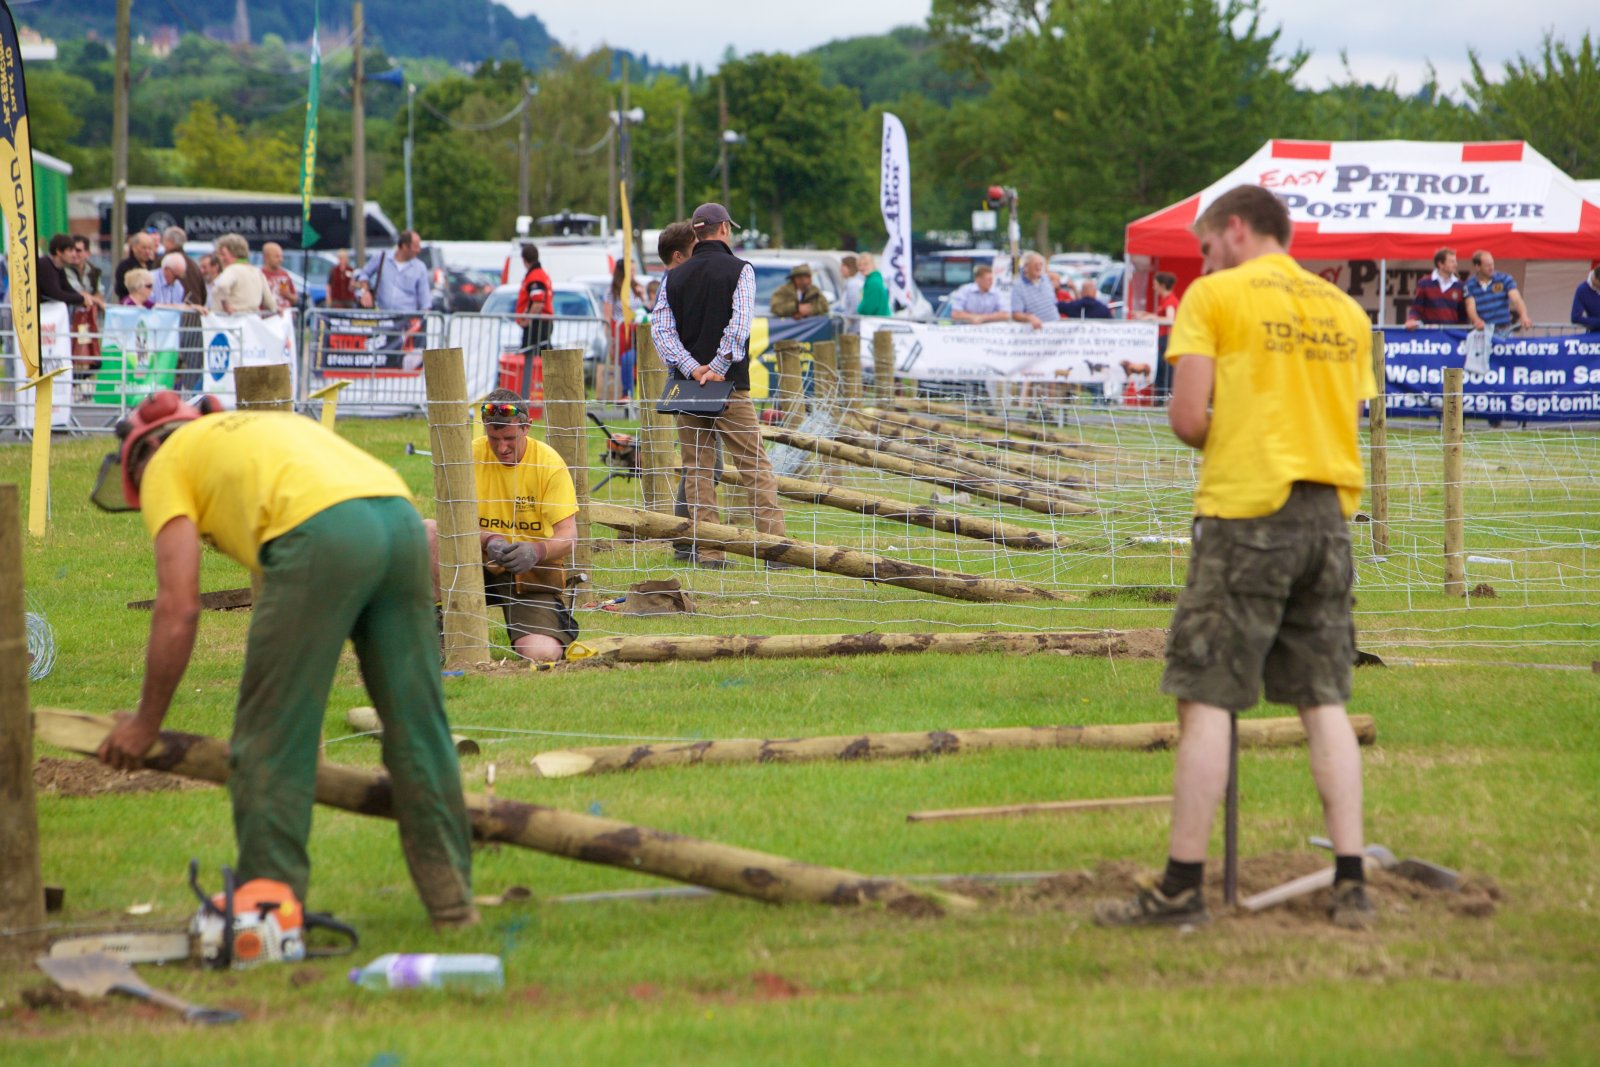 Competitors in the Tornado wire fencing competition